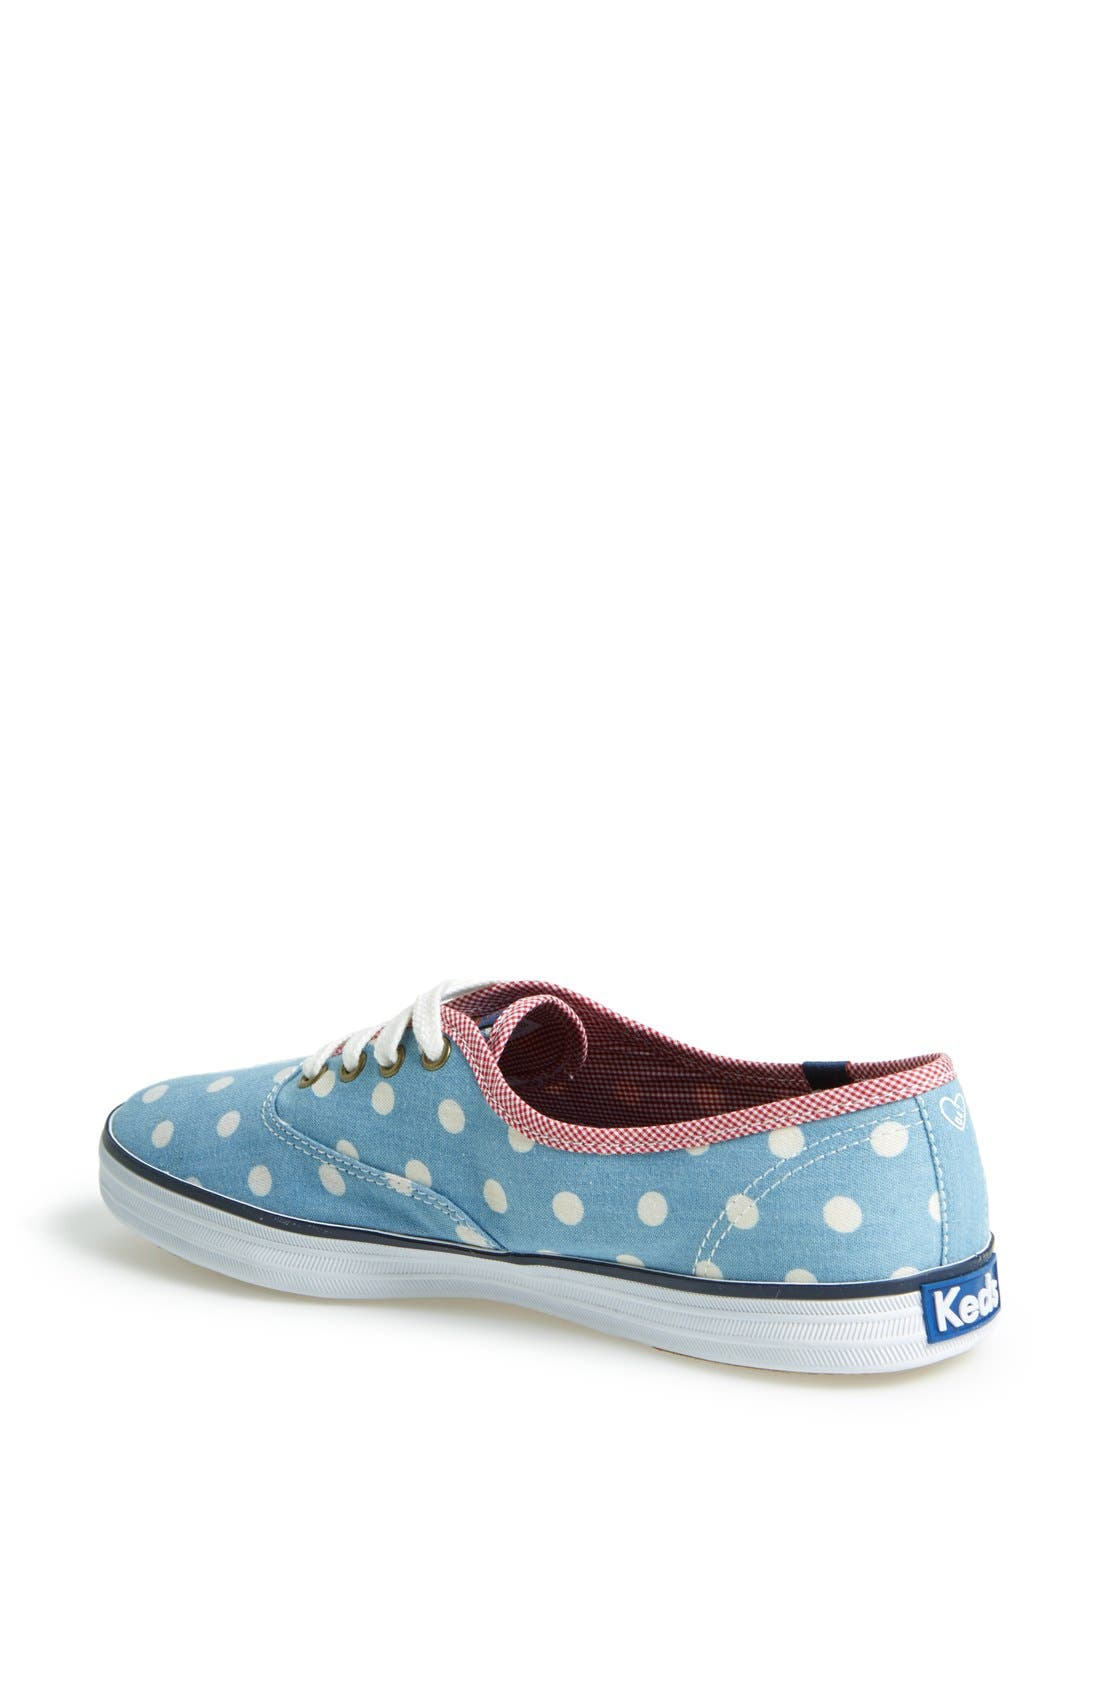 Alternate Image 2  - Keds® Taylor Swift 'Champion Polka Dot' Sneaker (Women)